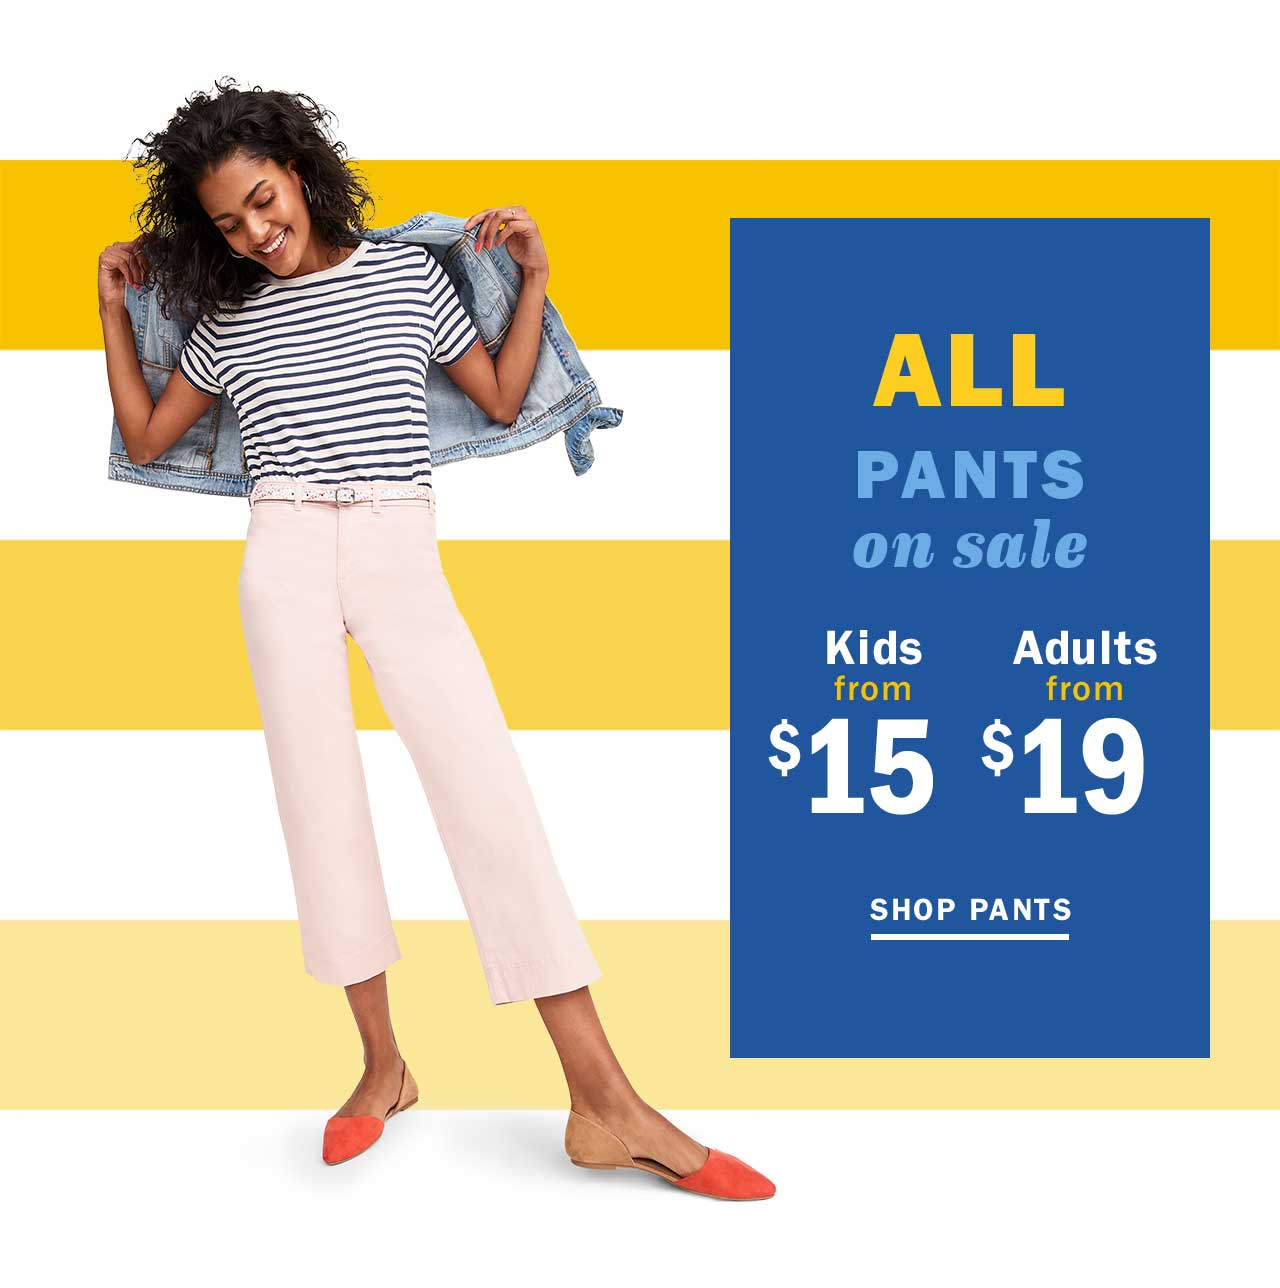 ALL PANTS on sale | SHOP PANTS